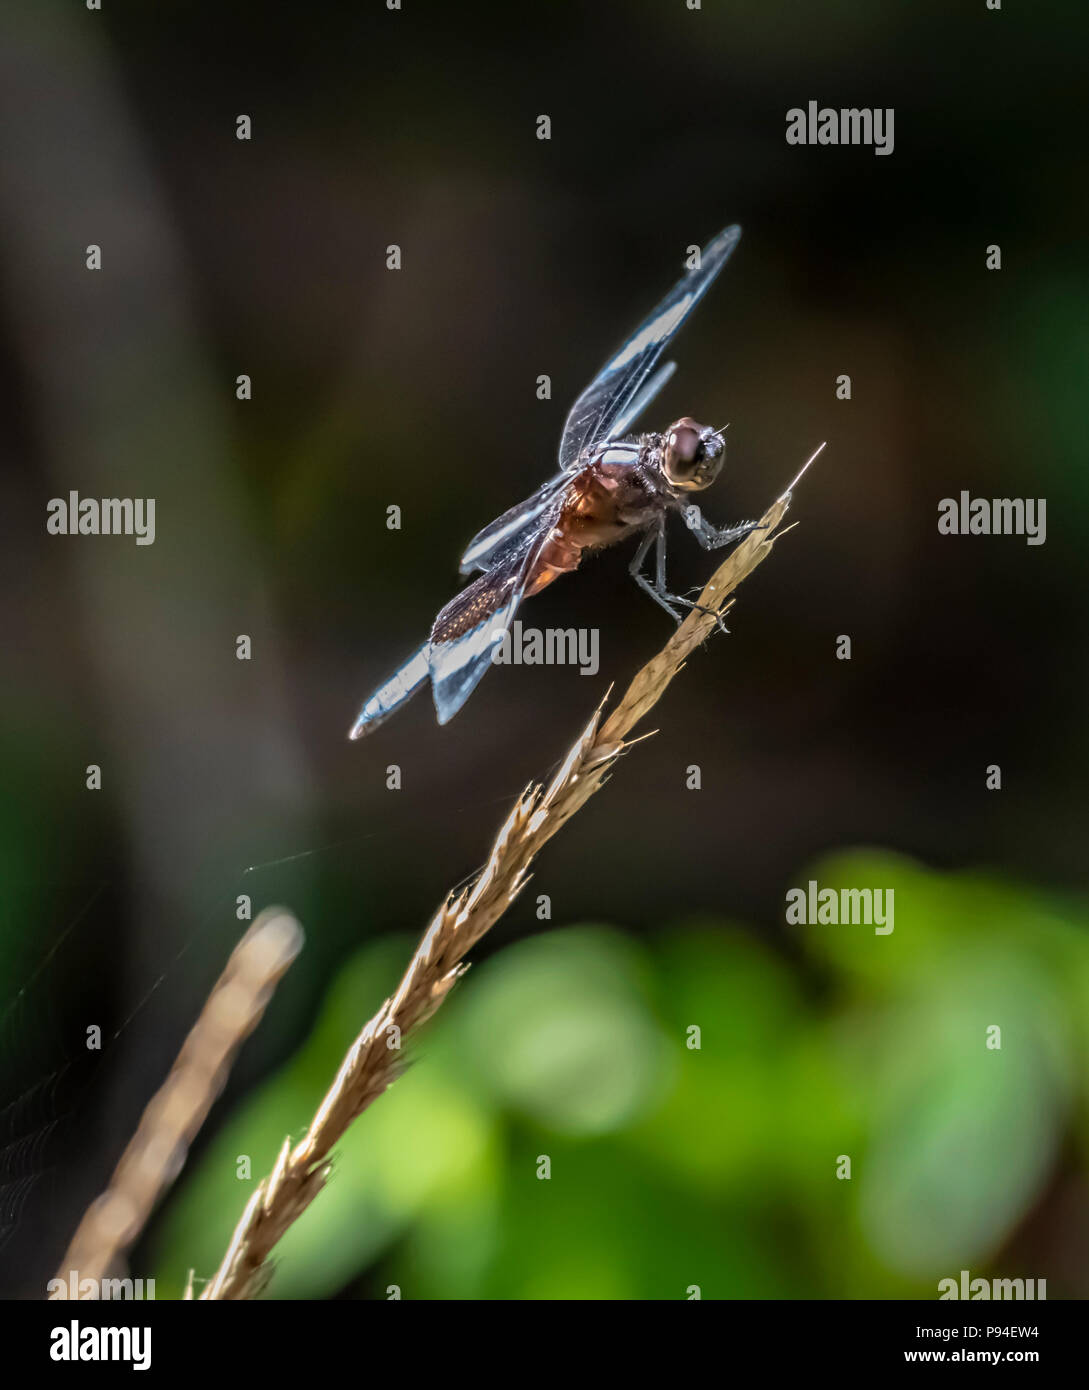 A dragonfly known as the slaty skimmer, Libellula incesta, alights on a weed, isolated against a mostly dark, out-of-focus background. Stock Photo